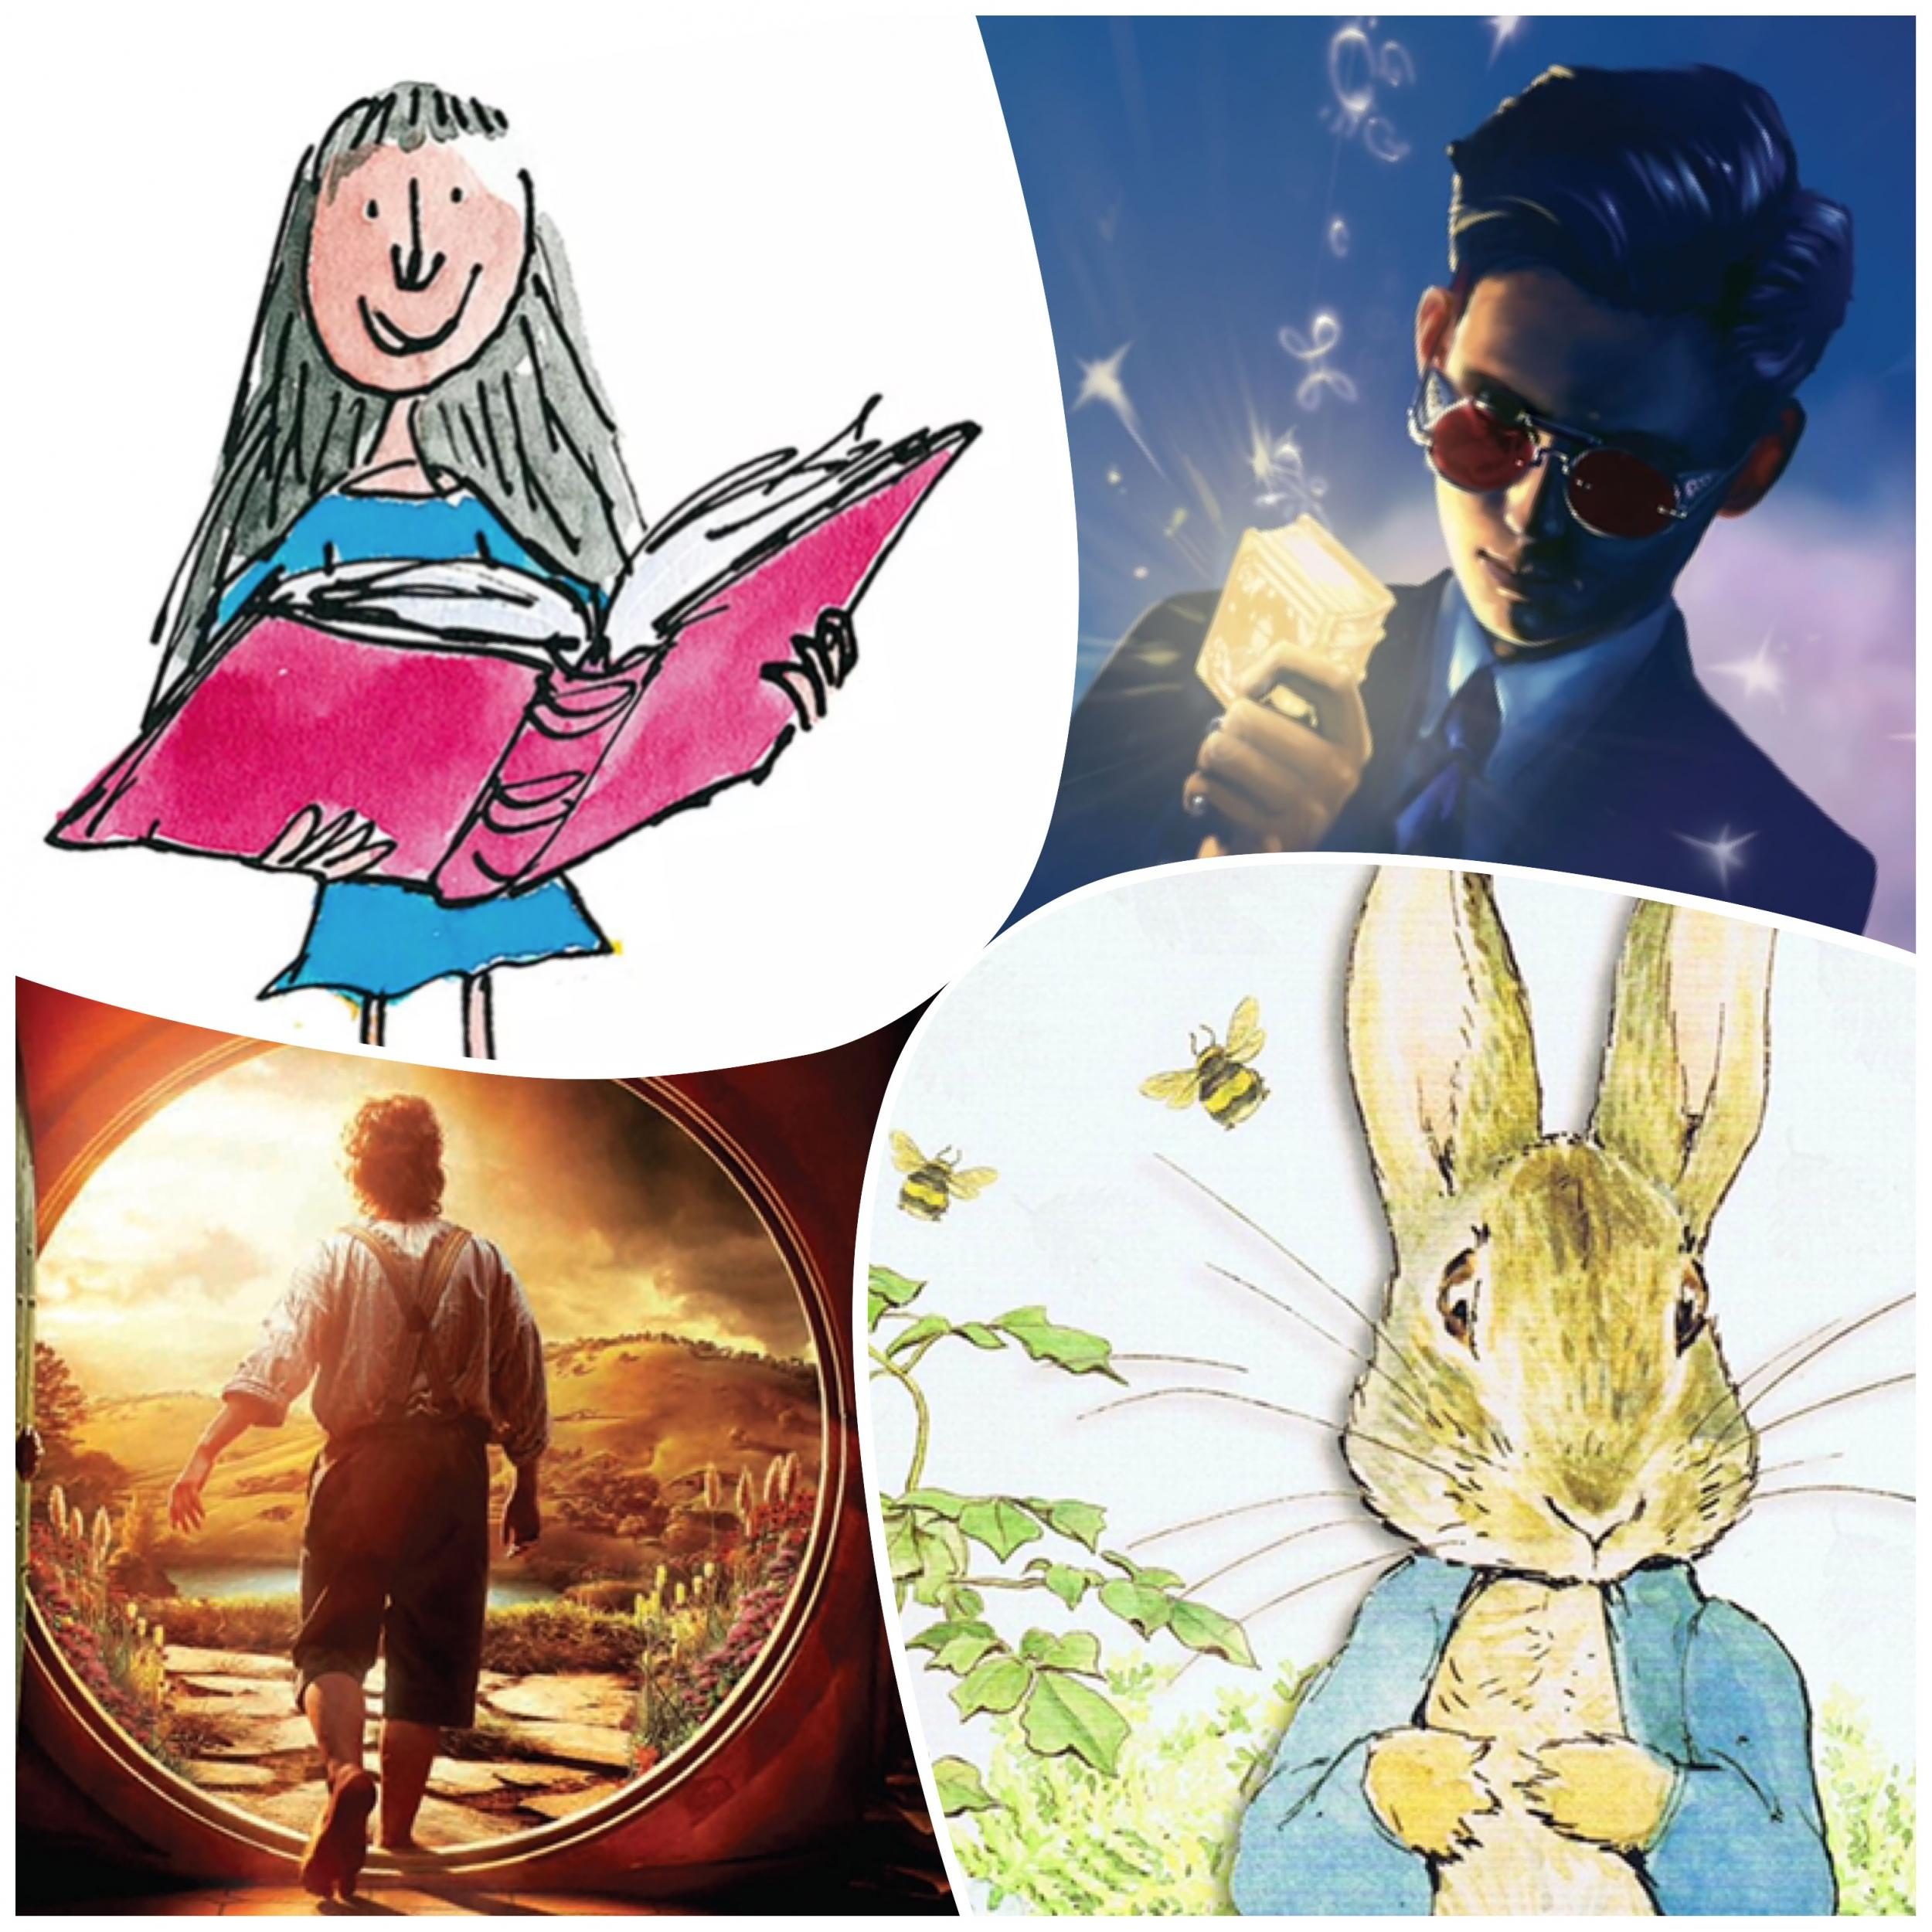 30 best children's books: From Peter Rabbit to Artemis Fowl